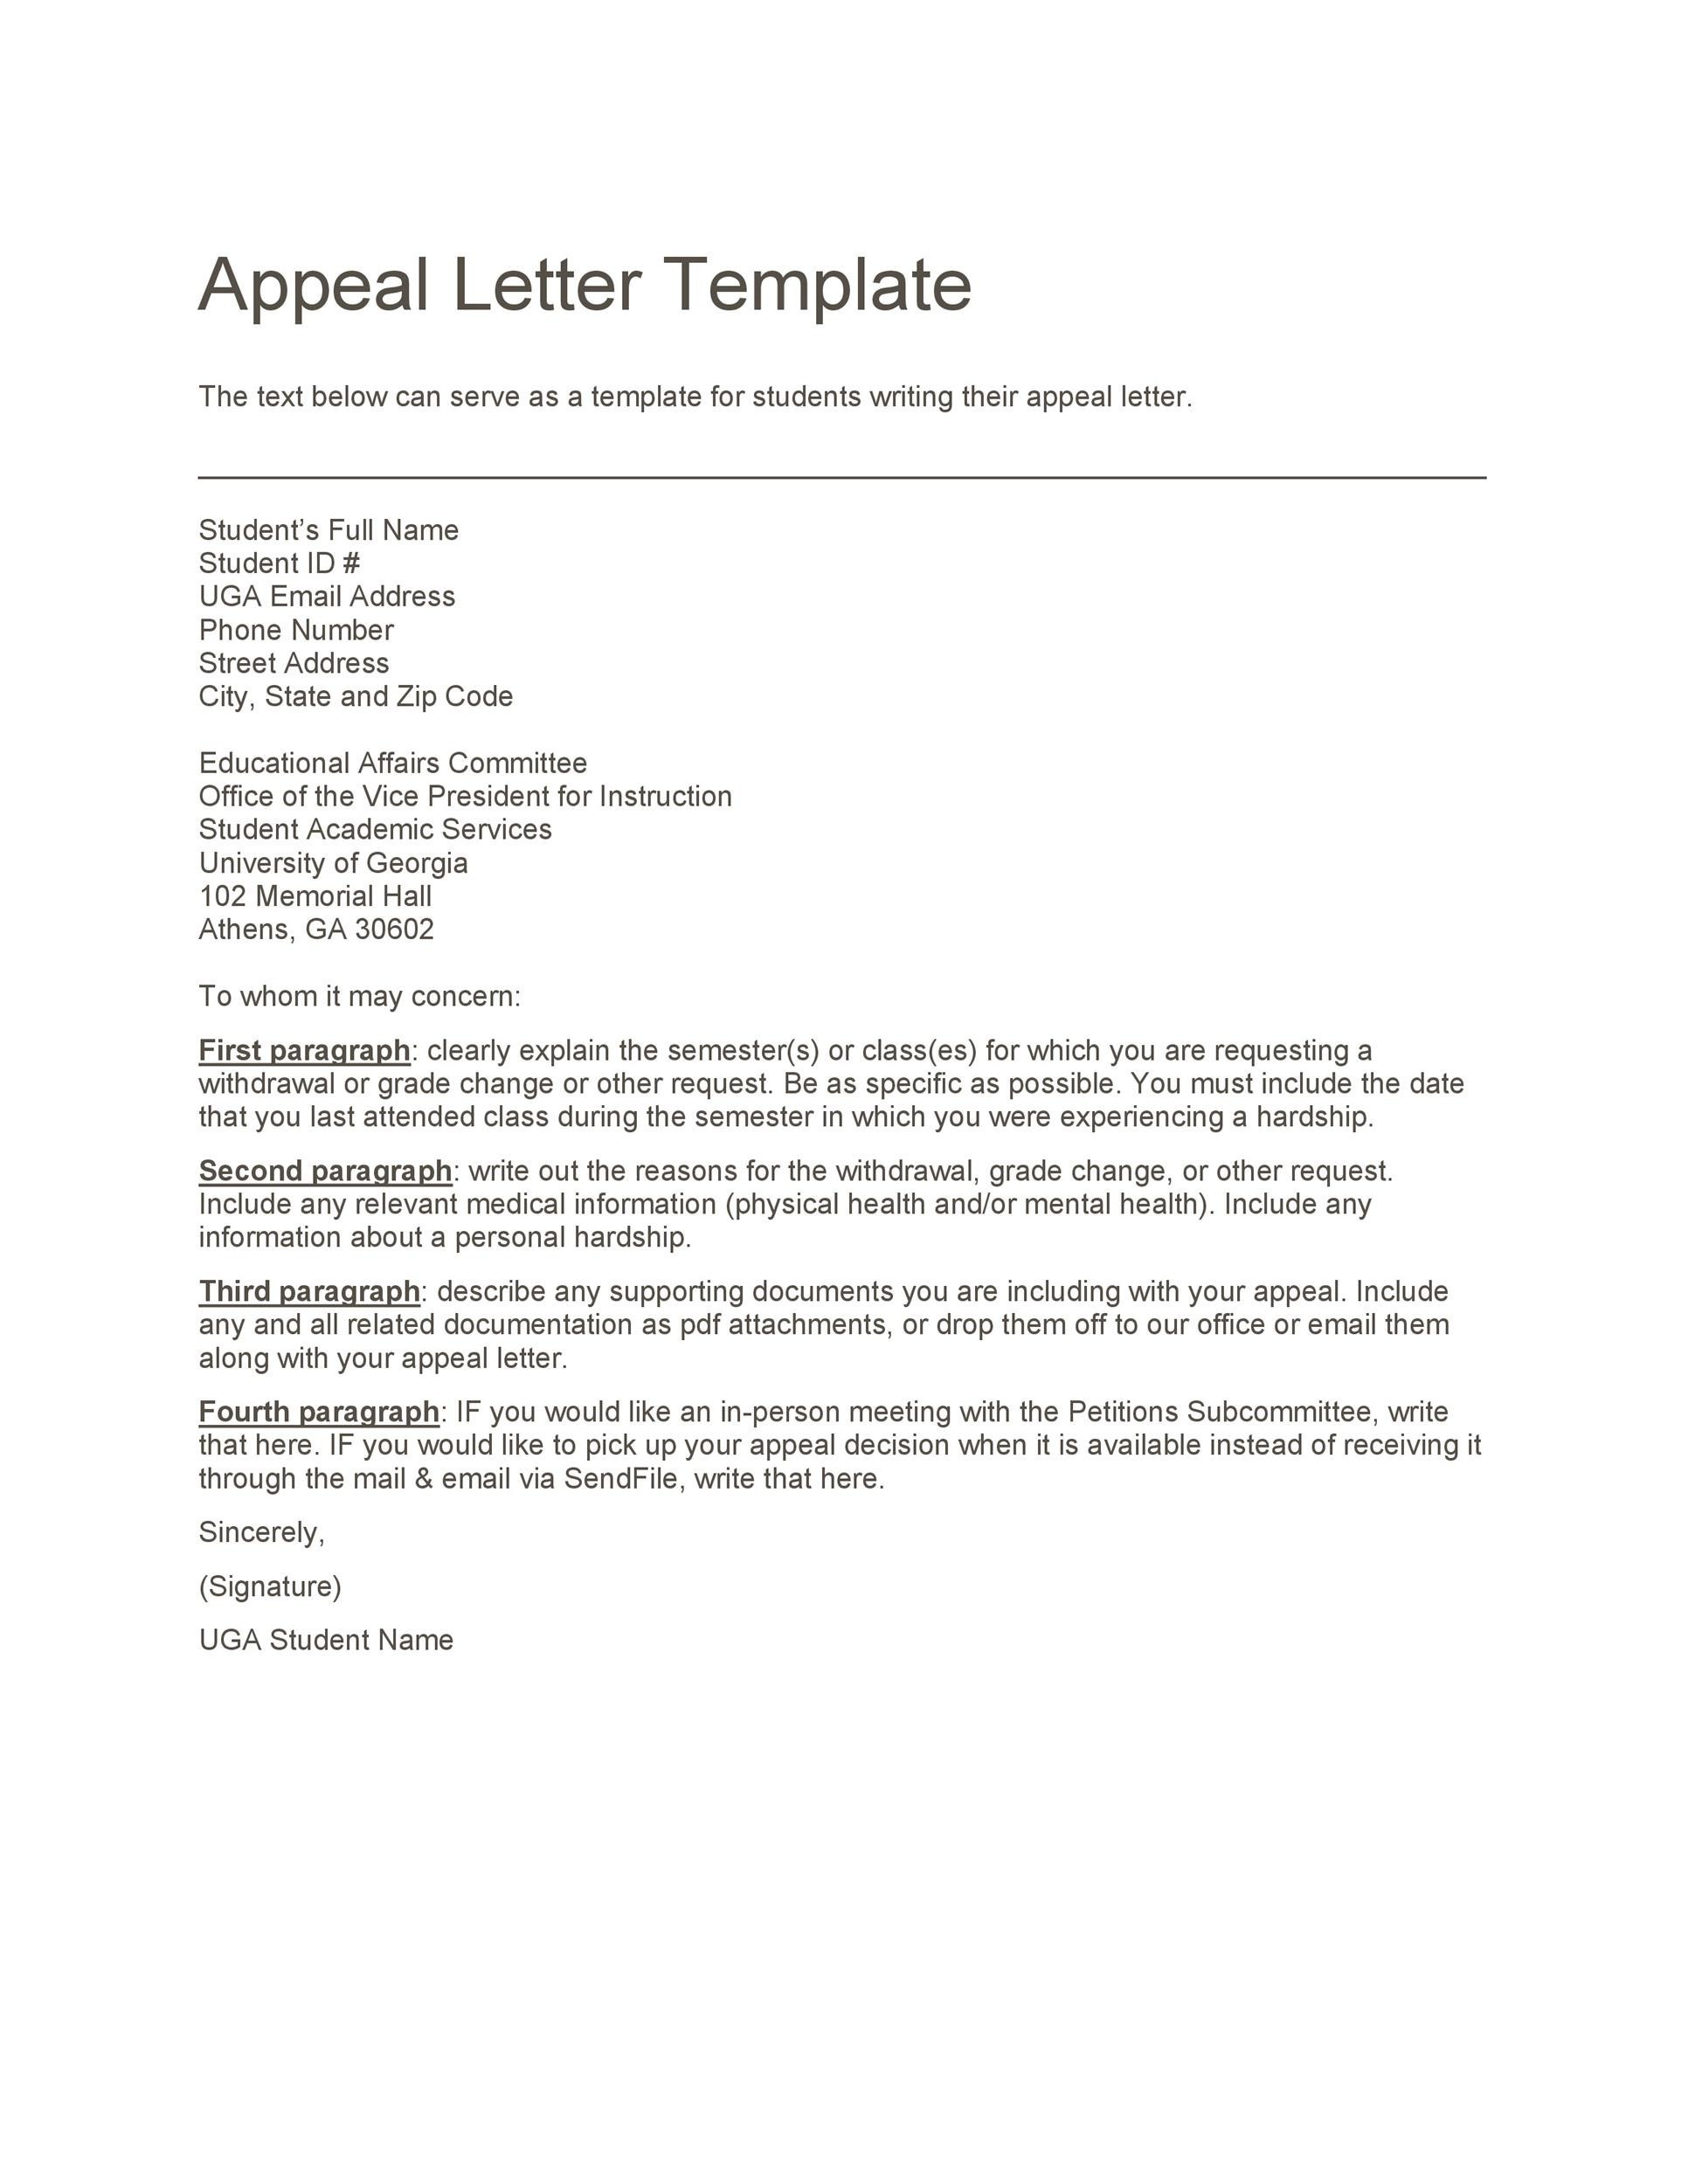 Sample Of Appealing Letter from templatelab.com